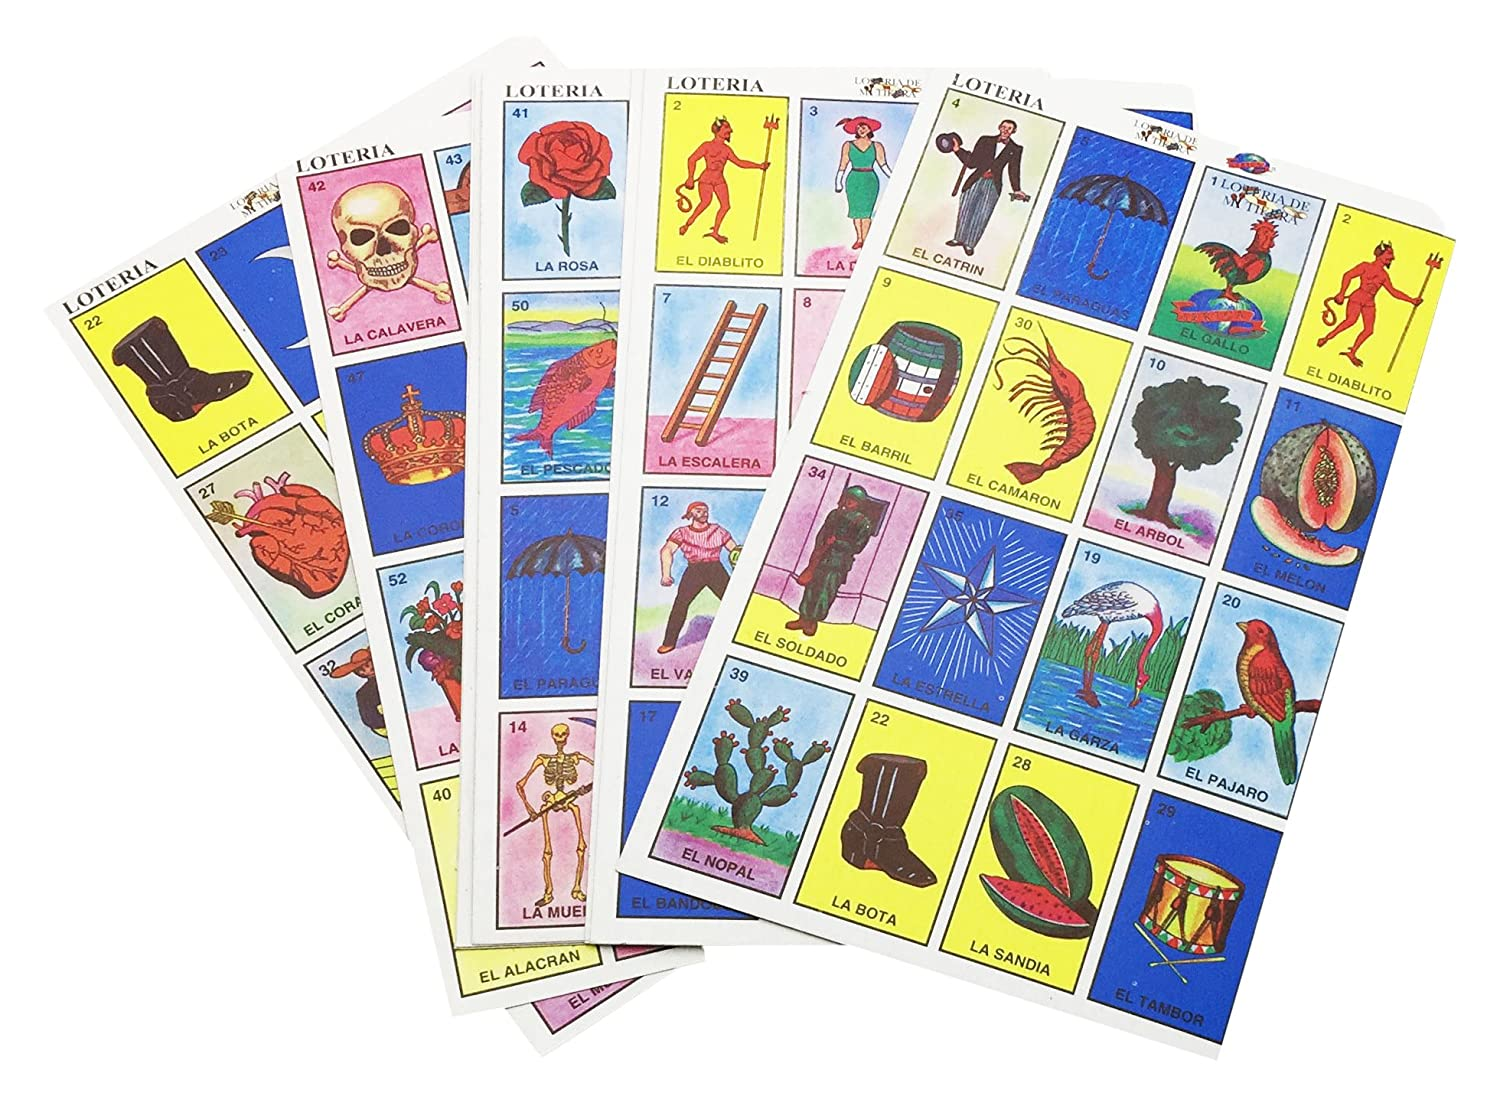 Amazon.com: IMUSA USA TOY-01100 Traditional Mexican Loteria Card Game: Arts, Crafts & Sewing